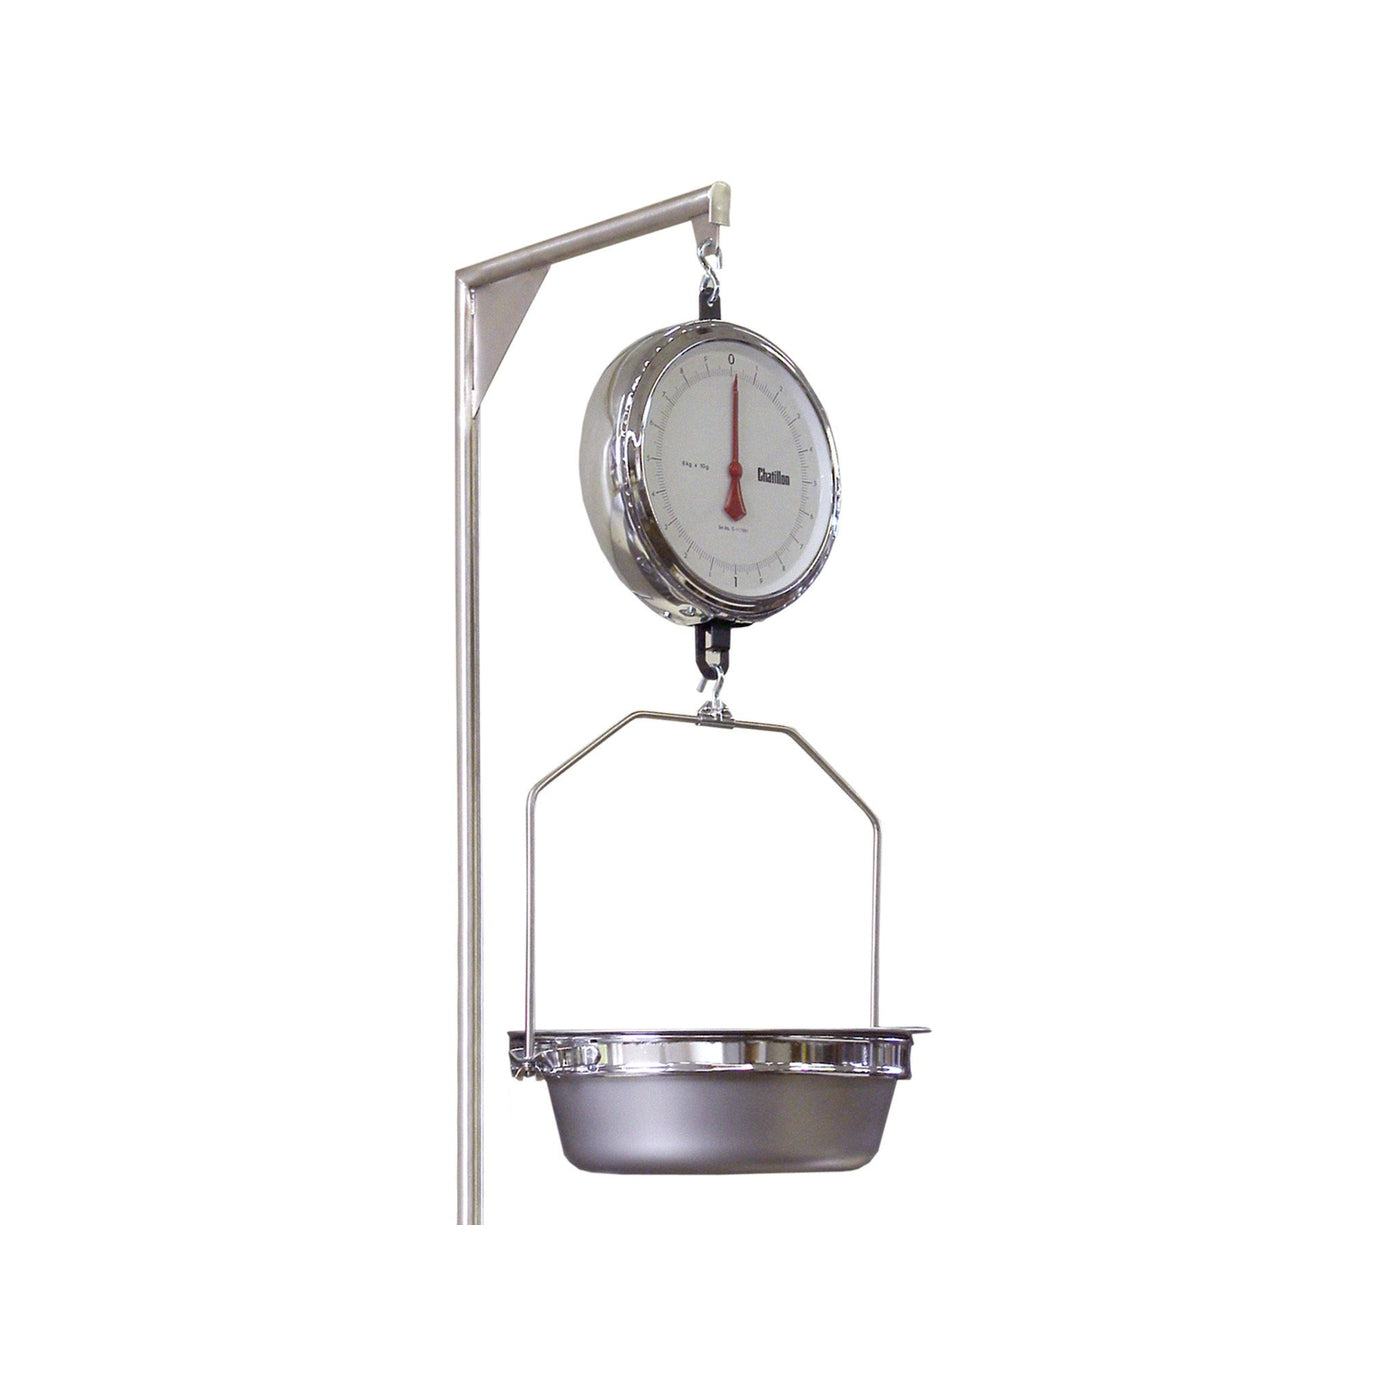 Double Dial Hanging Autopsy Scale-Laboratory Accessory-Mortech Manufacturing Company Inc. Quality Stainless Steel Autopsy, Morgue, Funeral Home, Necropsy, Veterinary / Anatomy, Dissection Equipment and Accessories